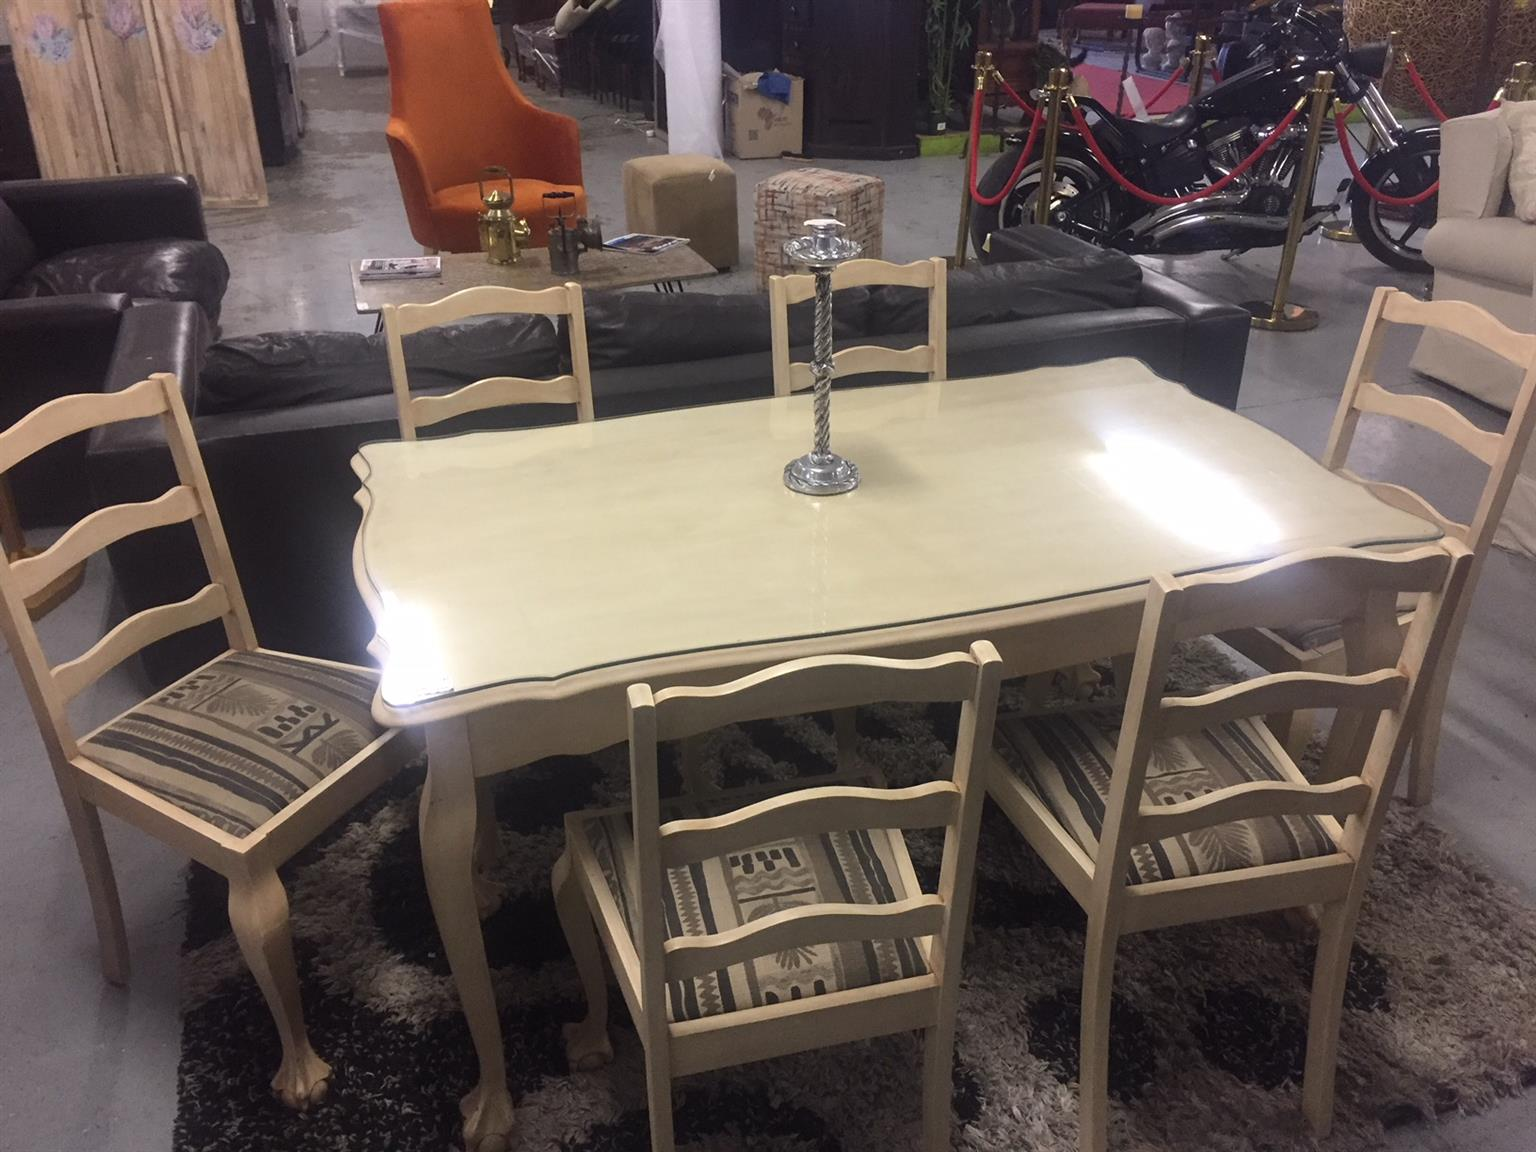 Refurbished Chairs Refurbished Ball And Claw Dining Table 6 Chairs